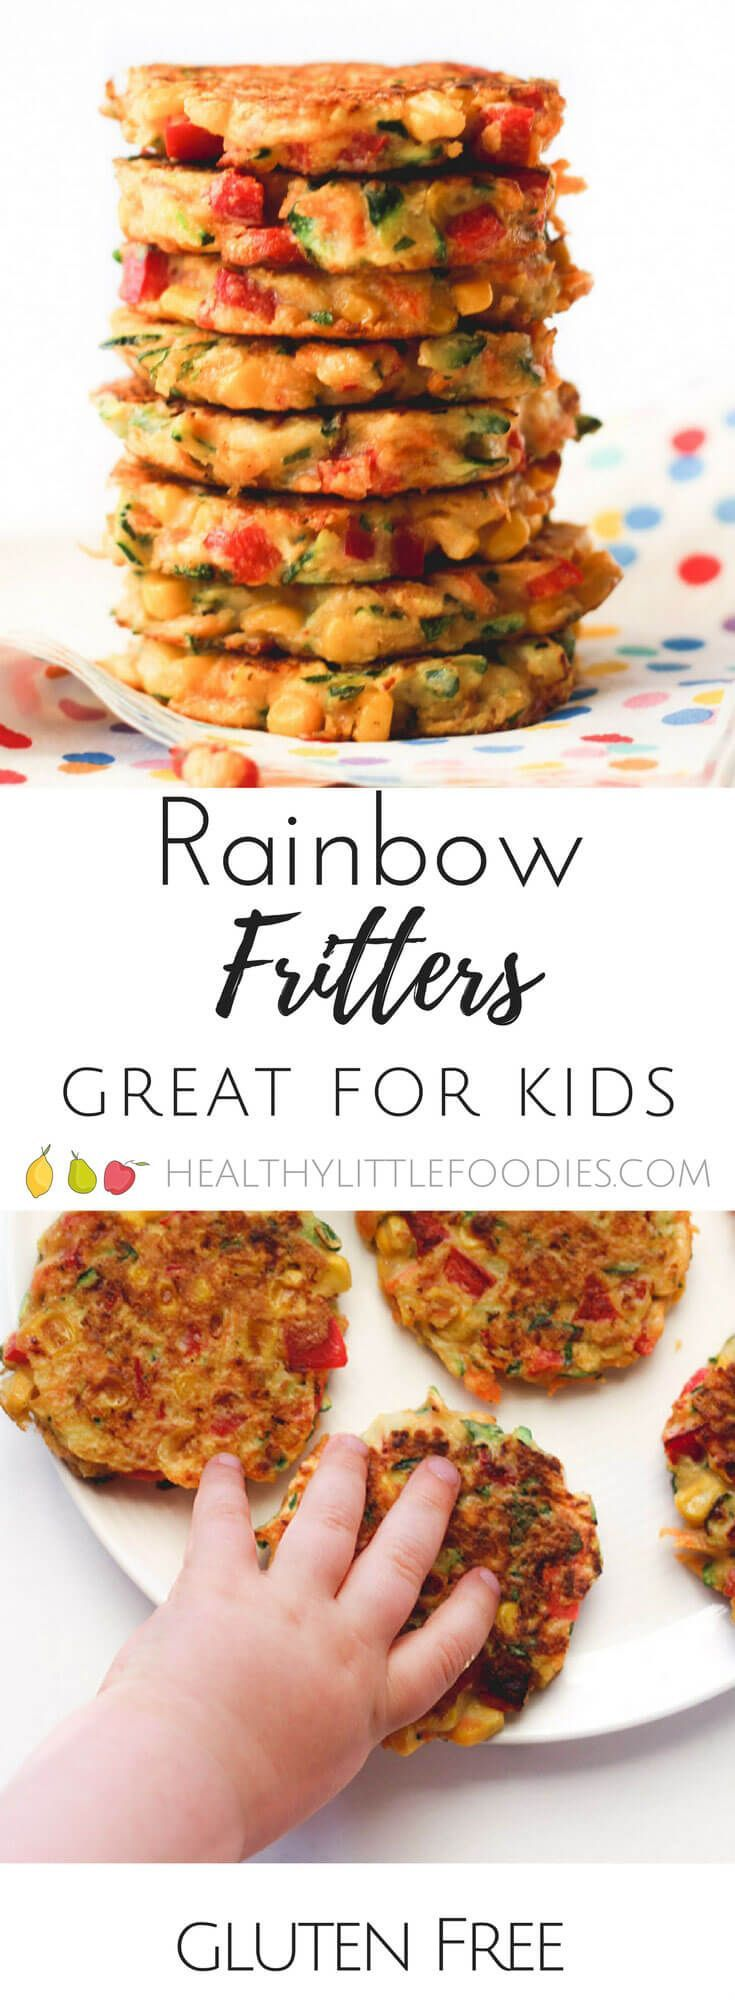 Rainbow Fritters with 4 Veggies- Healthy Little Foodies